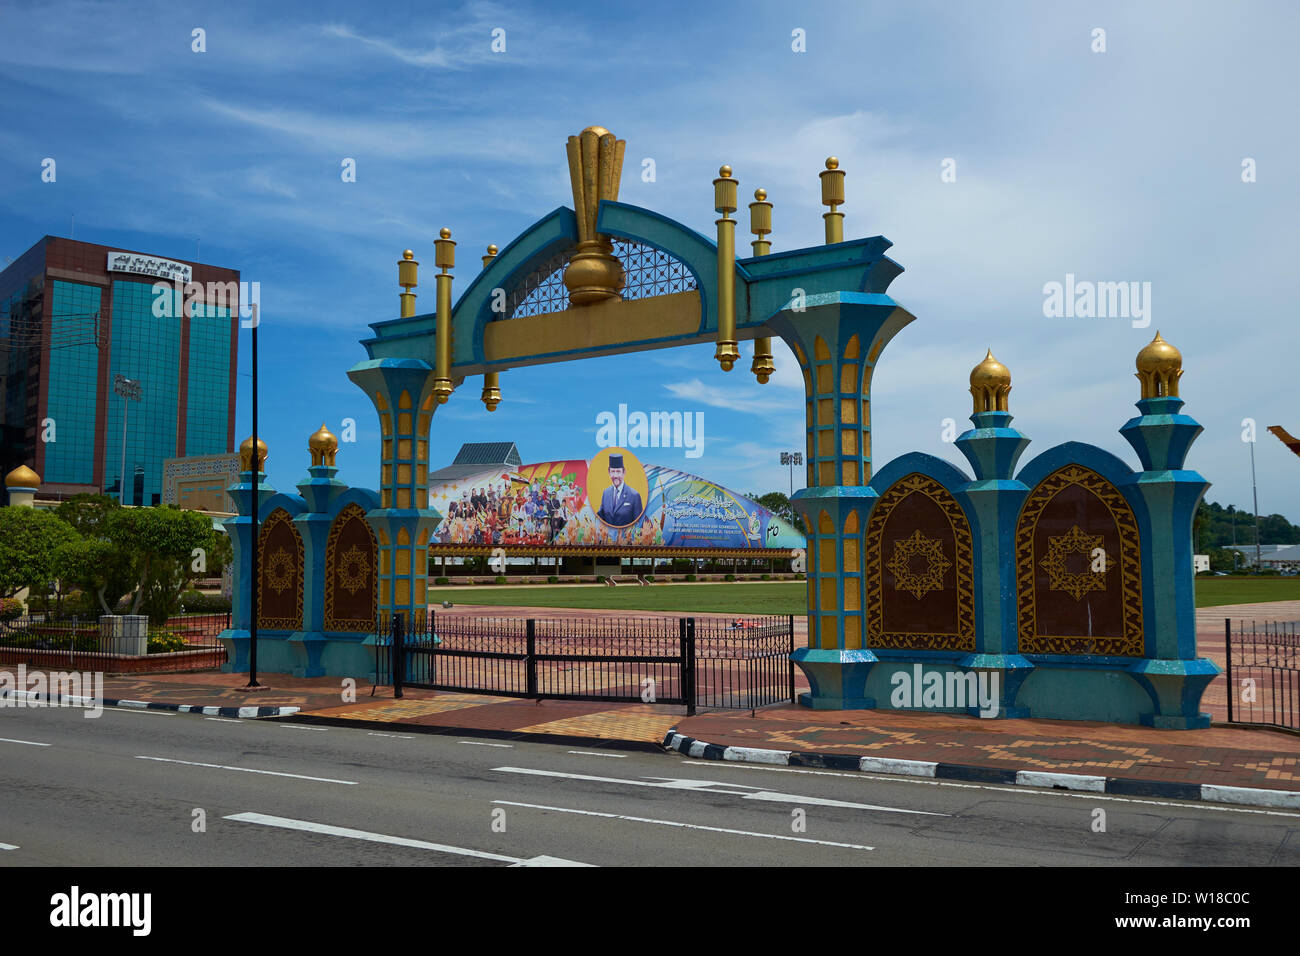 The main gate at the Taman Haji Sir Muda Omar Ali Saifuddien field in Bandar Seri Begawan, Brunei - Stock Image